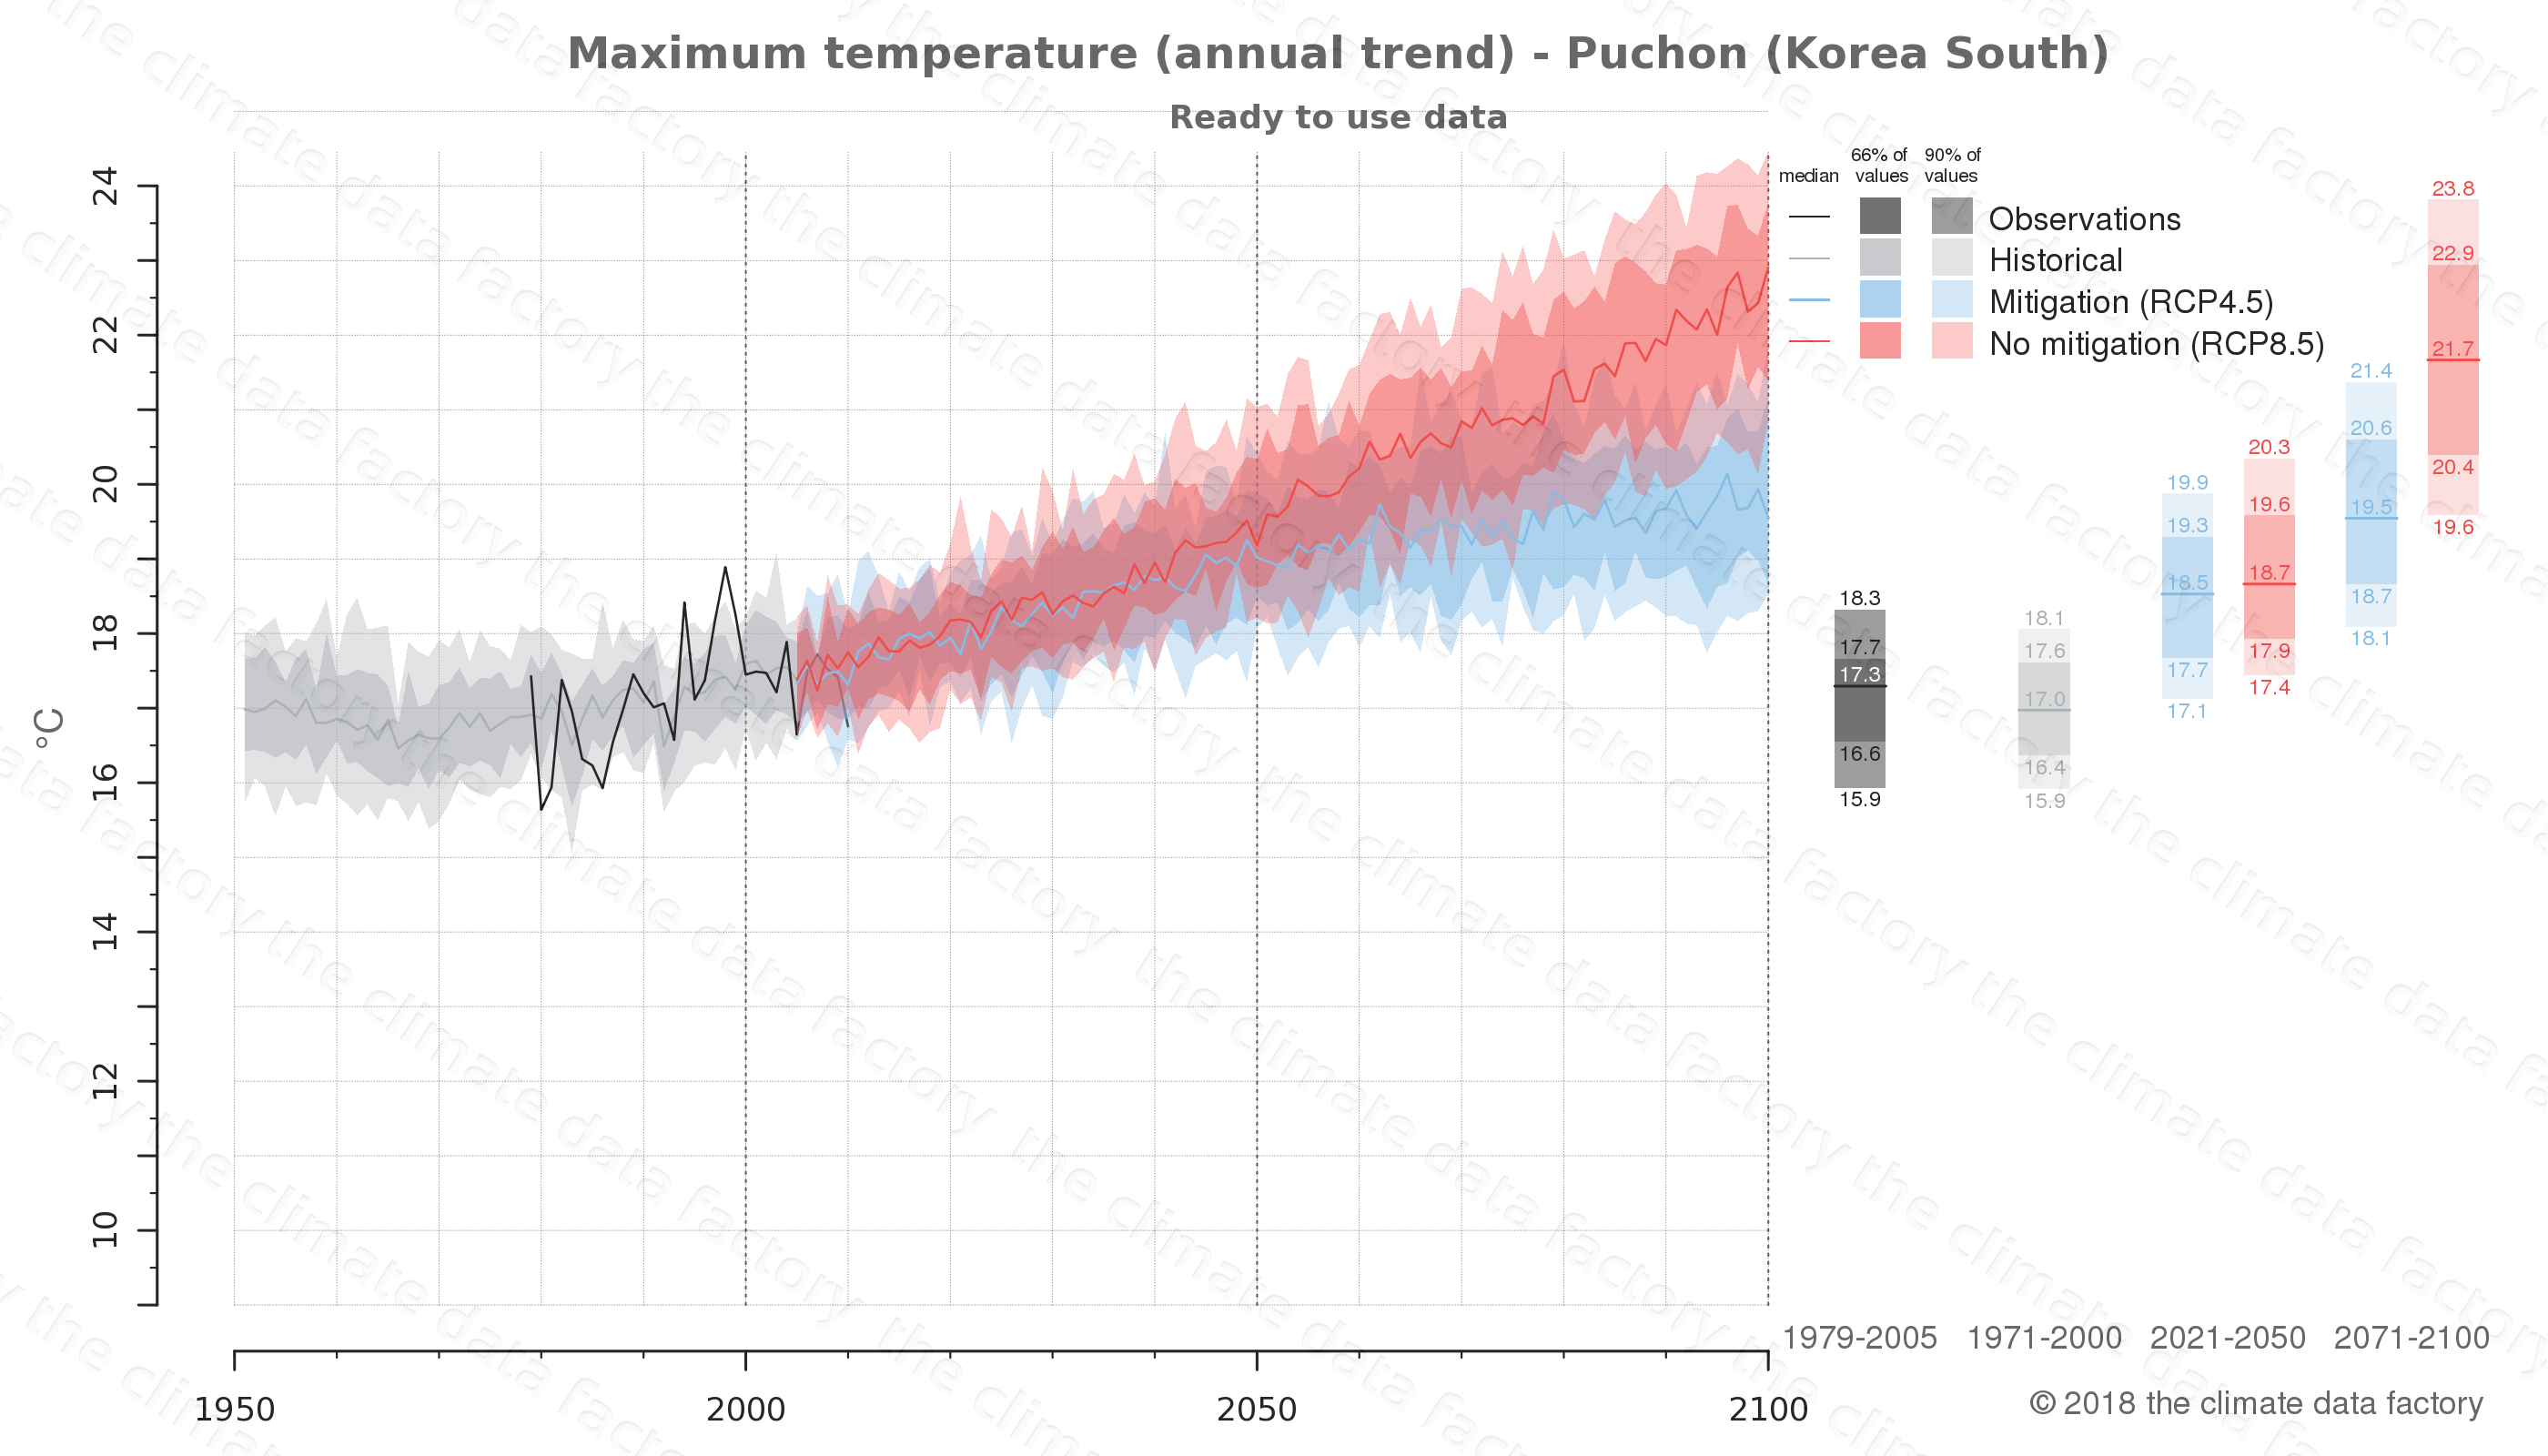 climate change data policy adaptation climate graph city data maximum-temperature puchon south korea